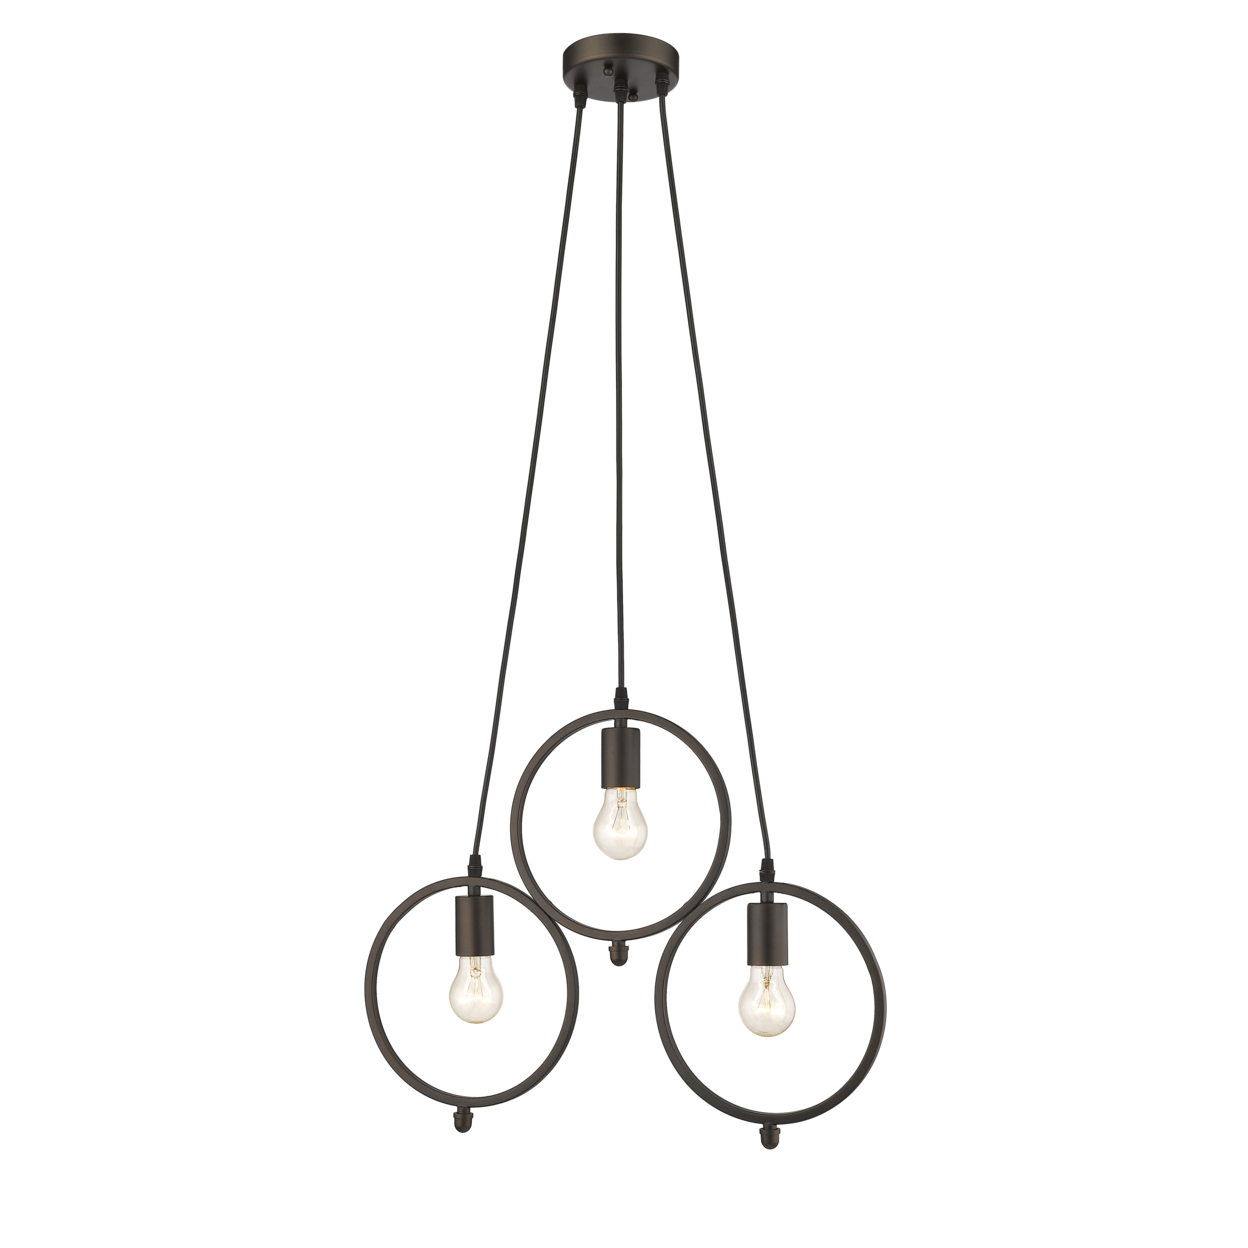 Lighting Ironclad Industrial 3 Light Rubbed Bronze Ceiling